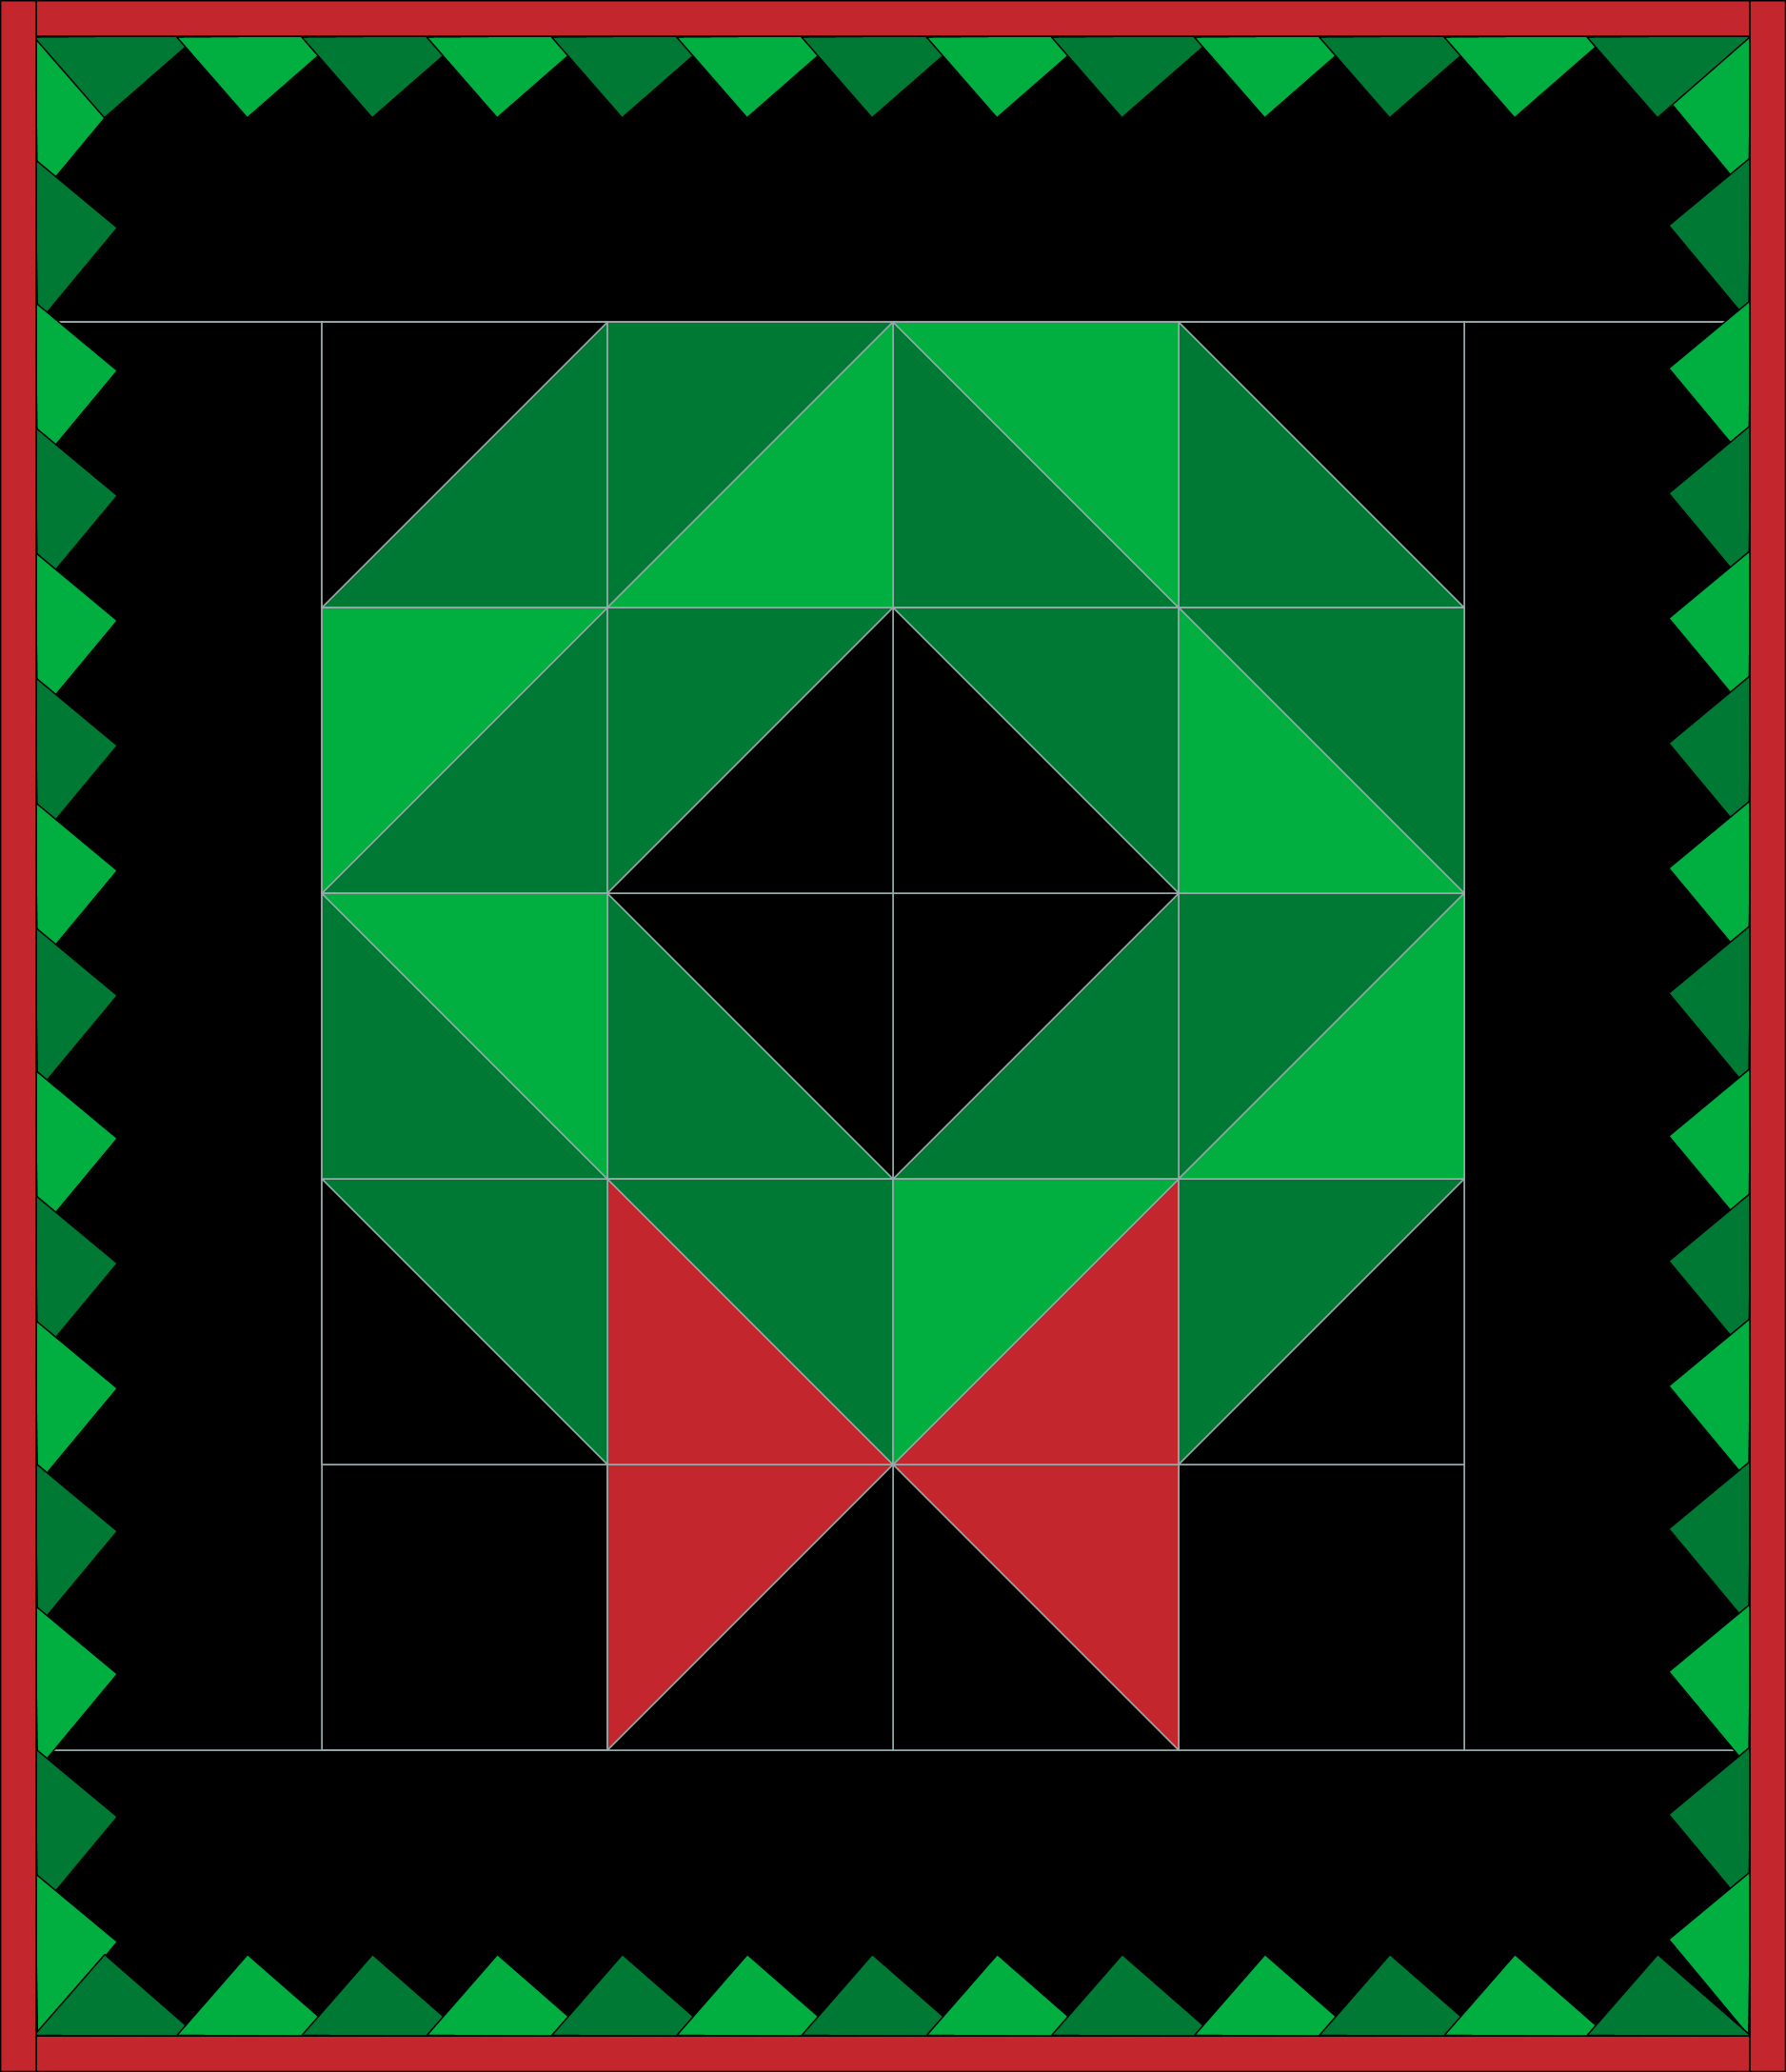 Christmas Wreath Quilt Assembly